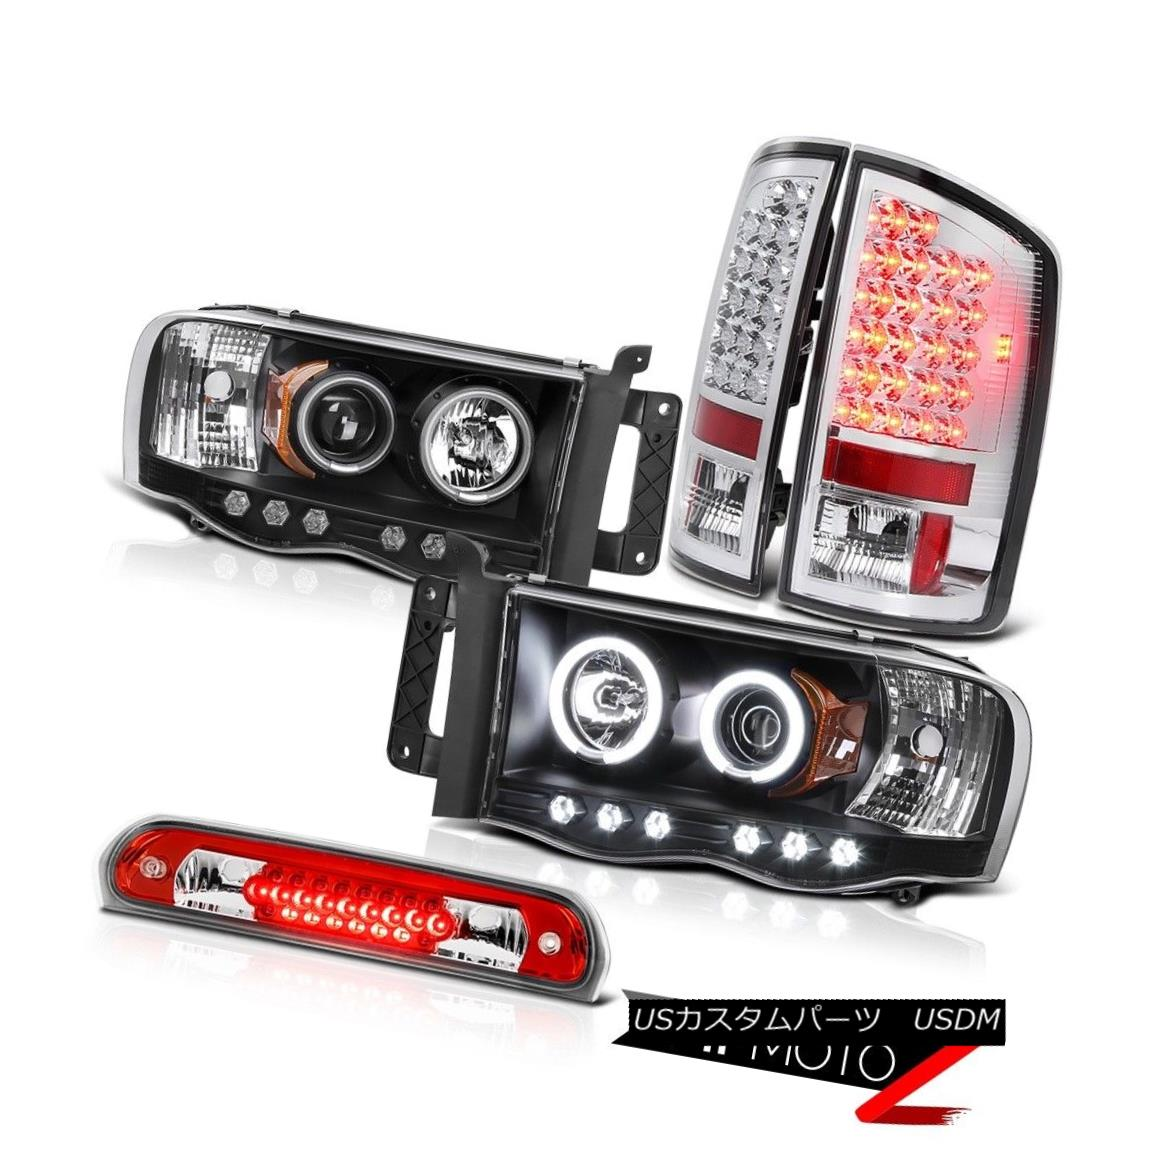 テールライト CCFL Halo Black Headlights Euro LED Tail Light Roof Brake Red 2002-2005 Ram 2500 CCFL Halo BlackヘッドライトユーロLEDテールライトルーフブレーキレッド2002-2005 Ram 2500